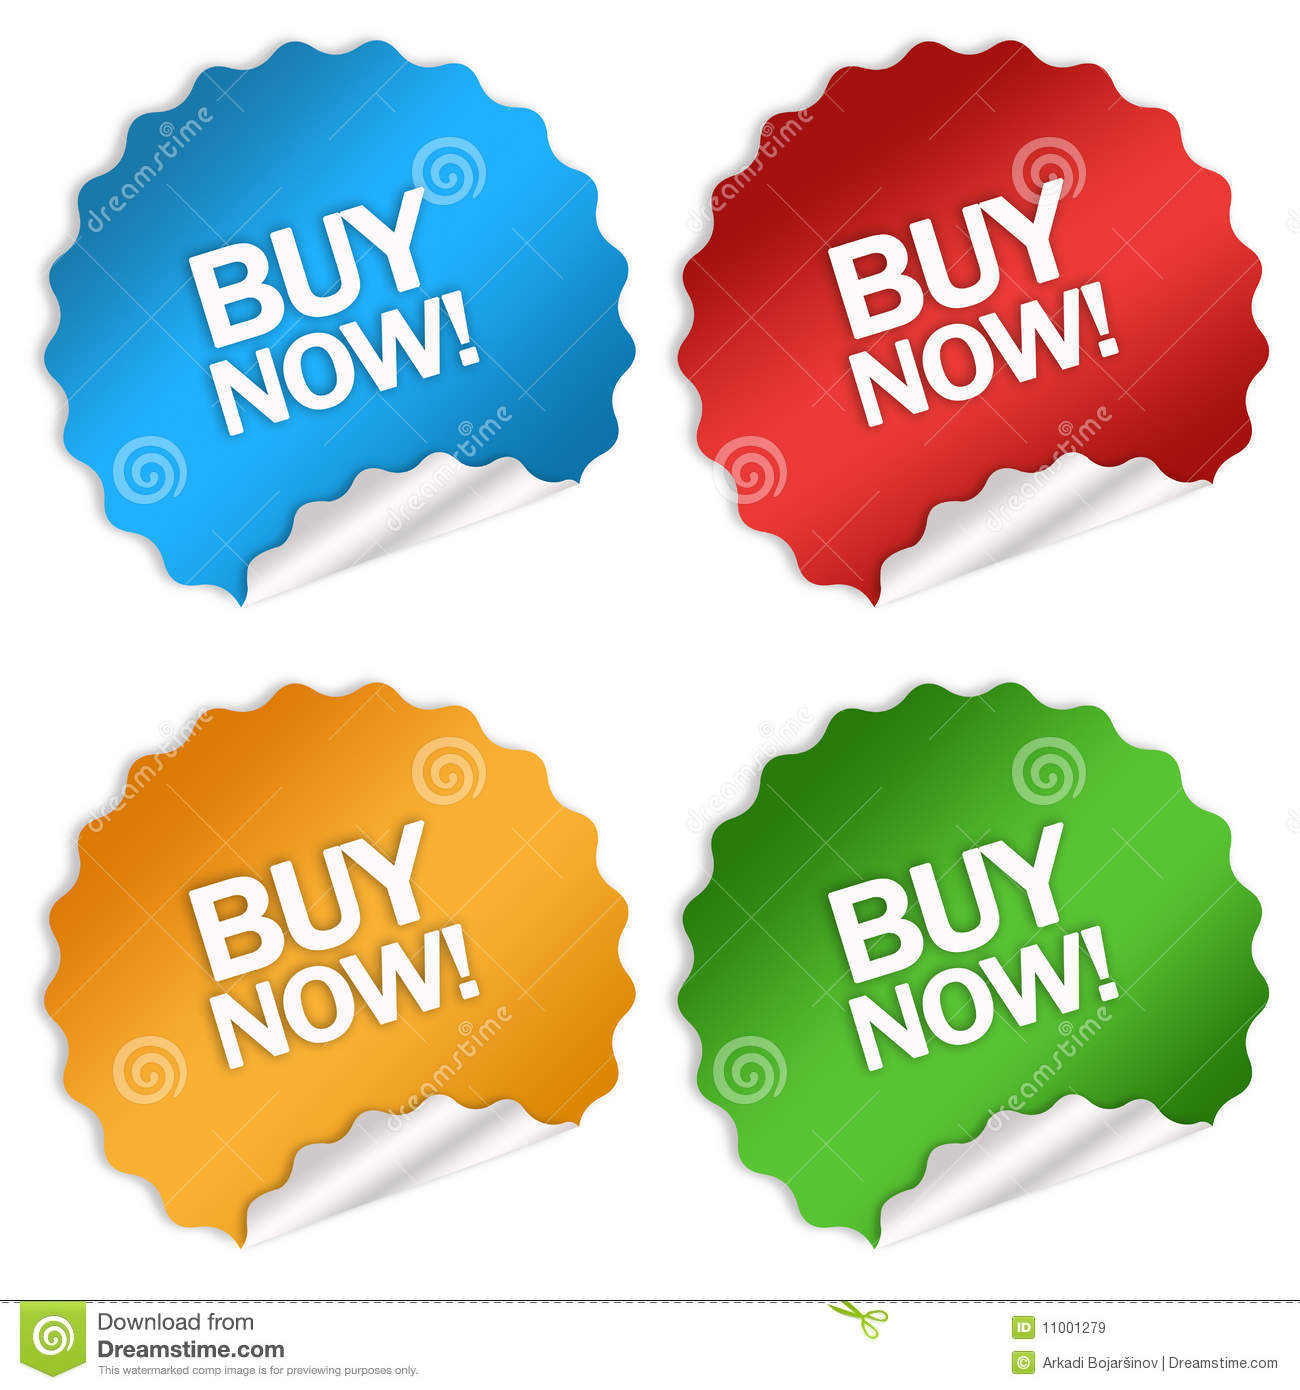 Buy Now Sticker Royalty Free Stock Images - Image: 11001279: dreamstime.com/royalty-free-stock-images-buy-now-sticker-image11001279